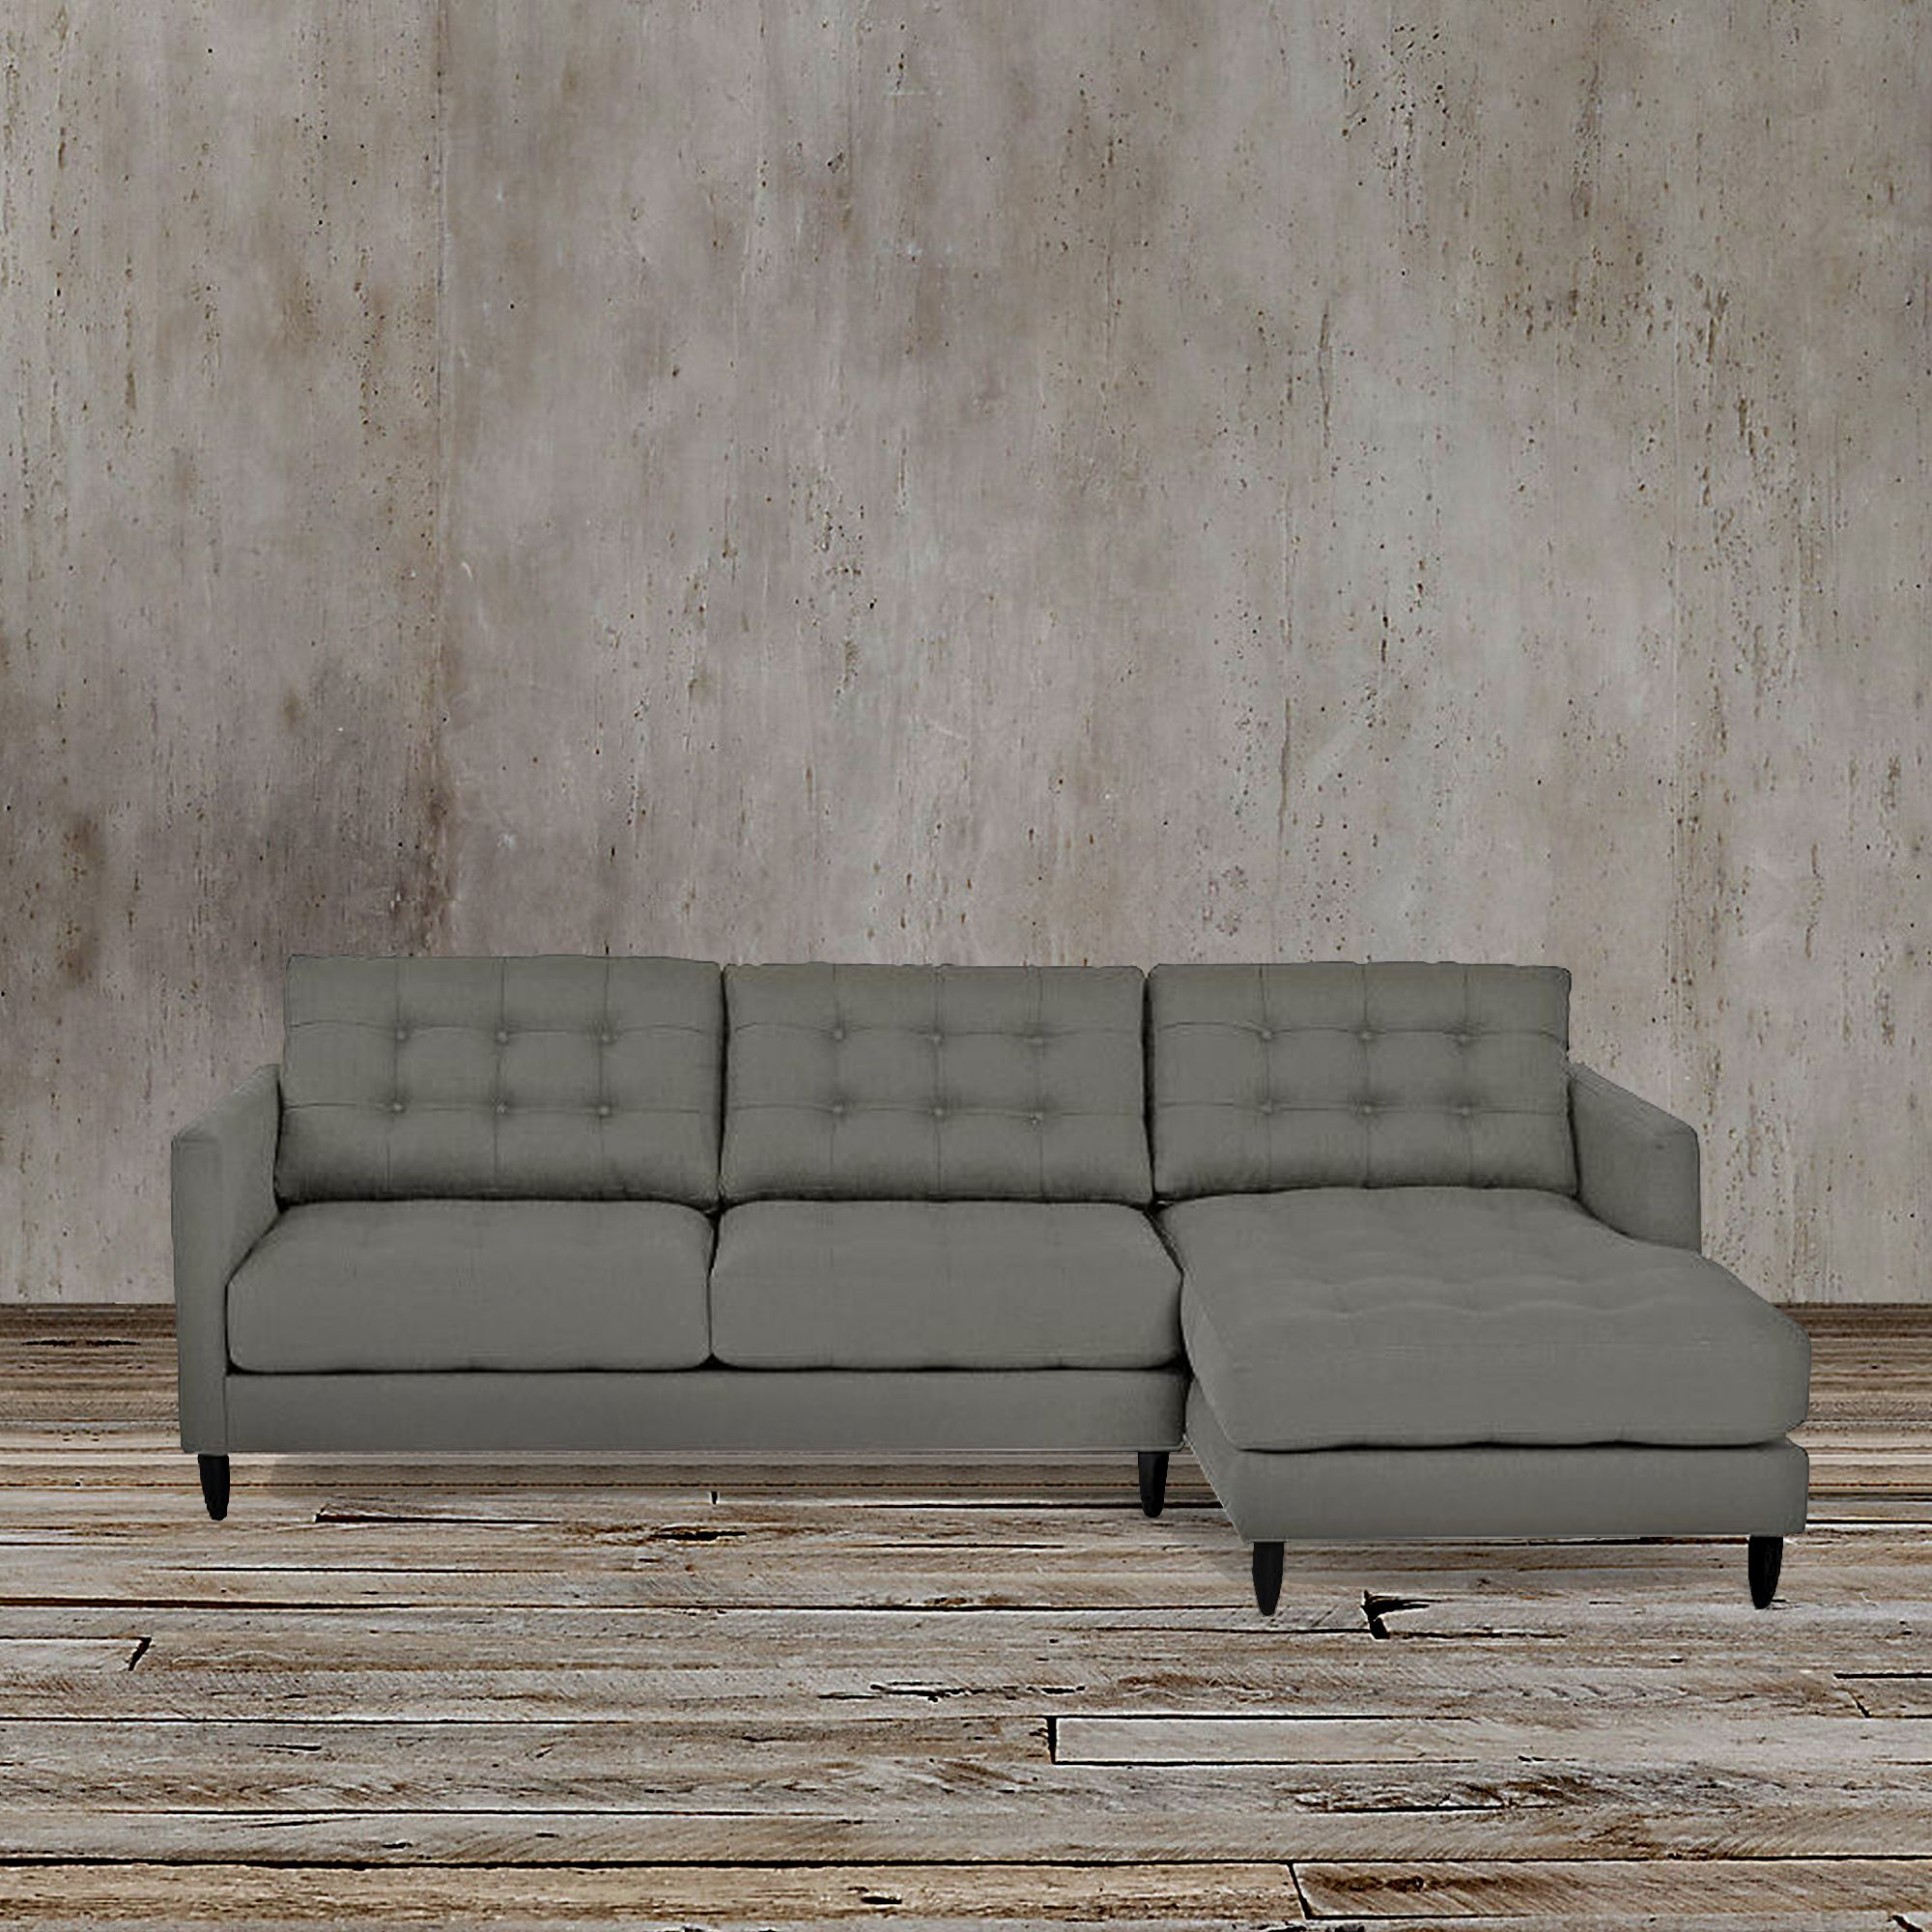 This Sleek And Functional Gray Left Arm Facing Sectional Regarding Florence Mid Century Modern Left Sectional Sofas (View 4 of 15)